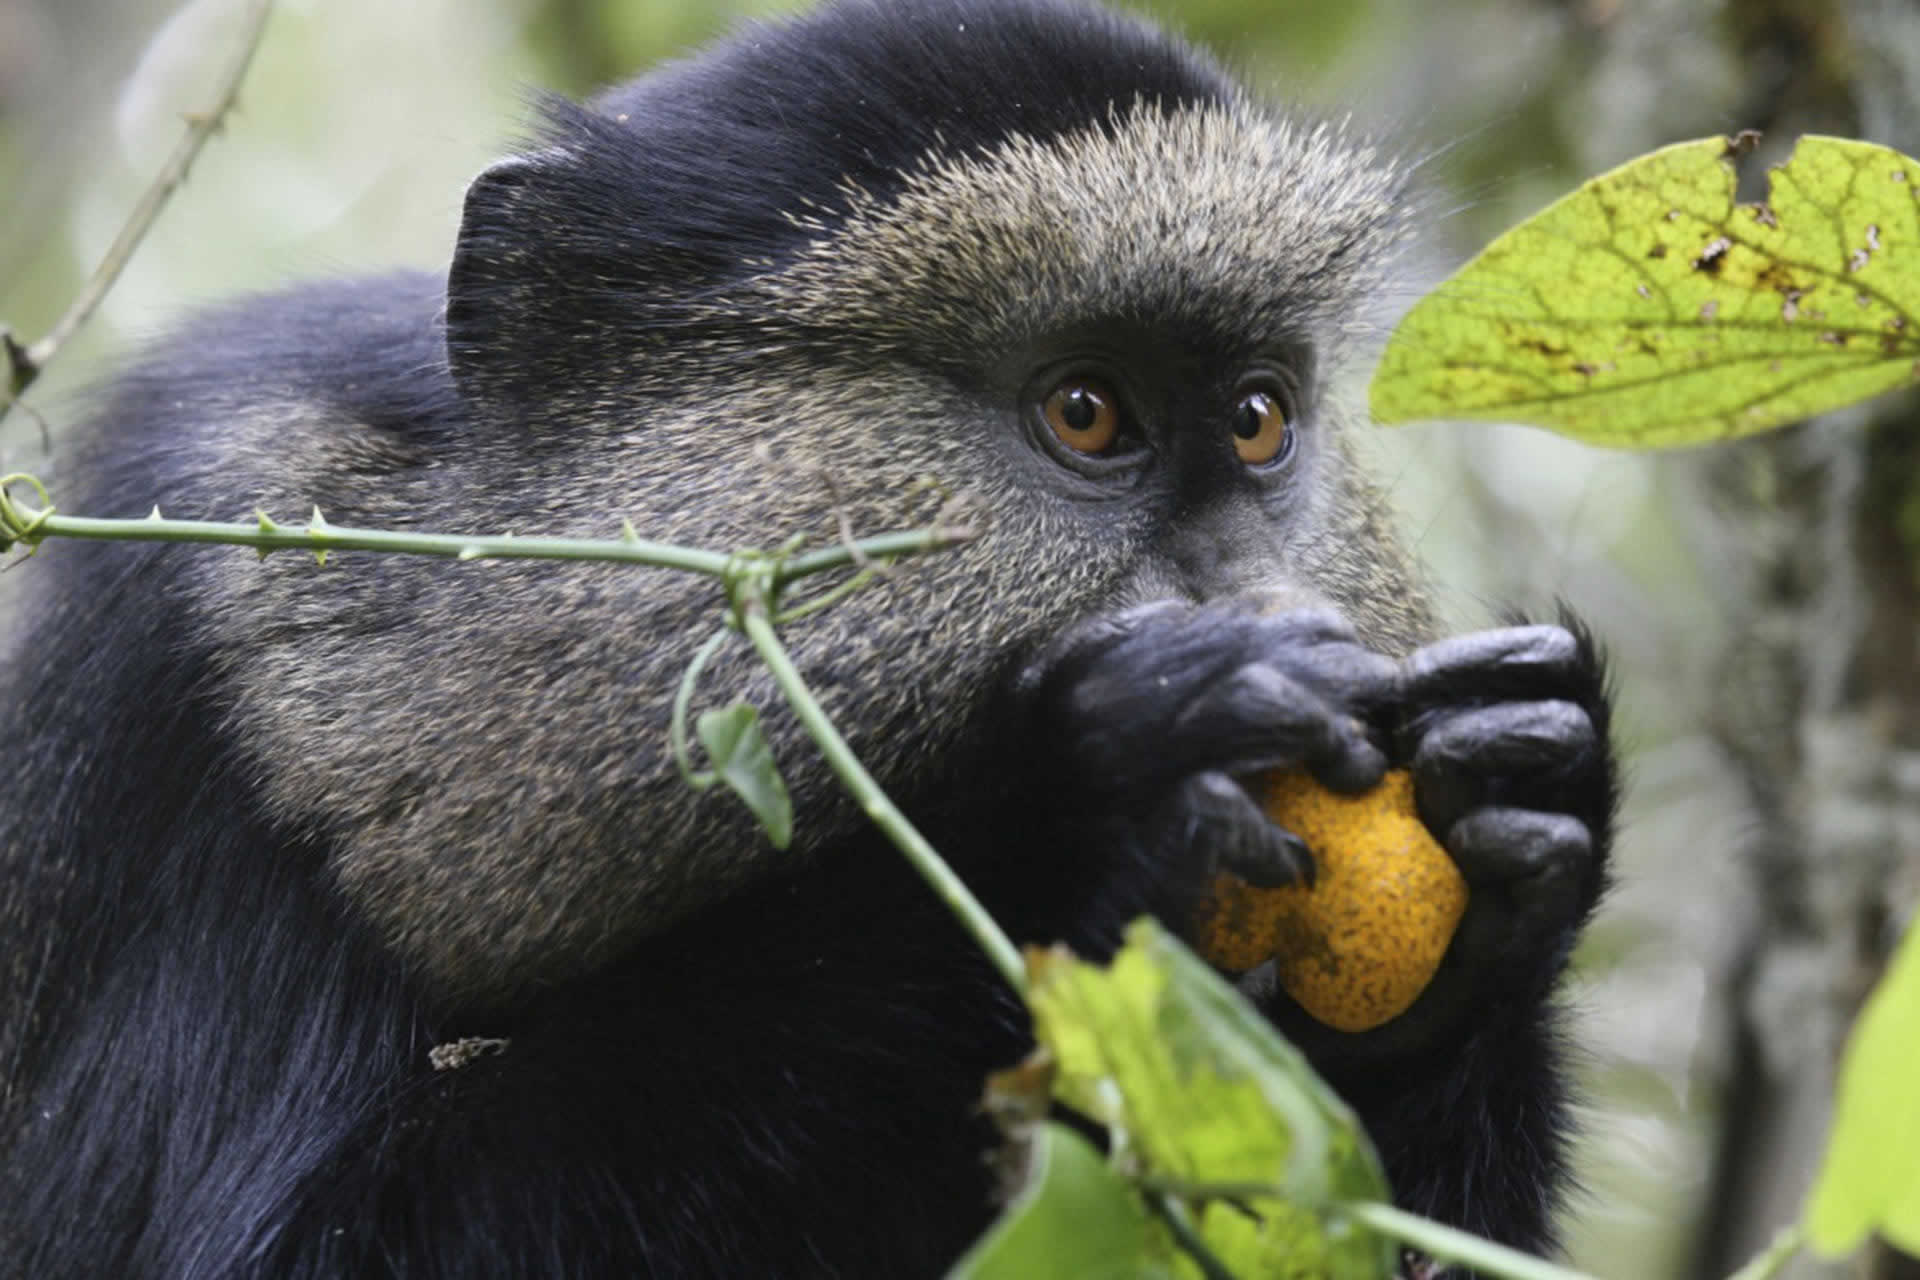 Primate Safaris, gorillas, chimpanzee and monkey safaris